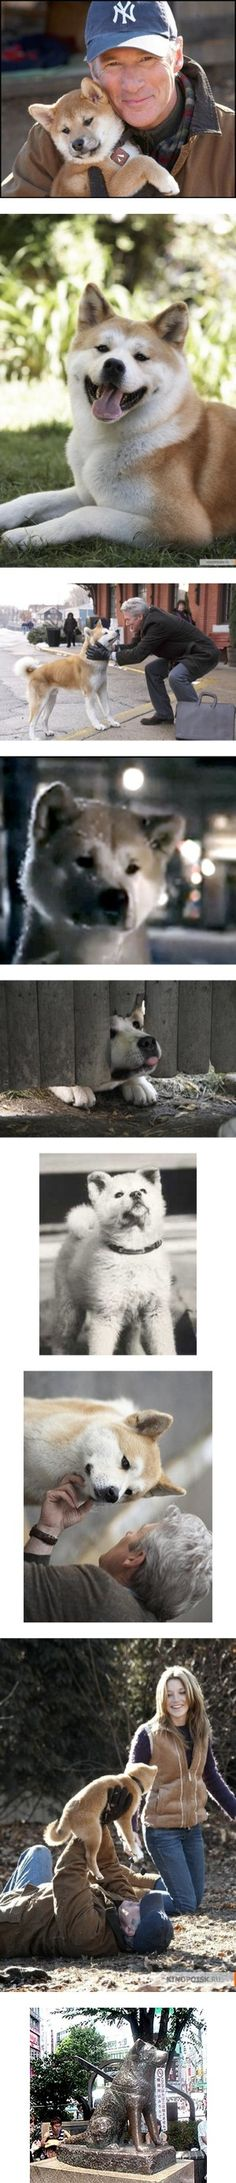 """""""Hachiko"""" by modelely ❤ liked on Polyvore"""